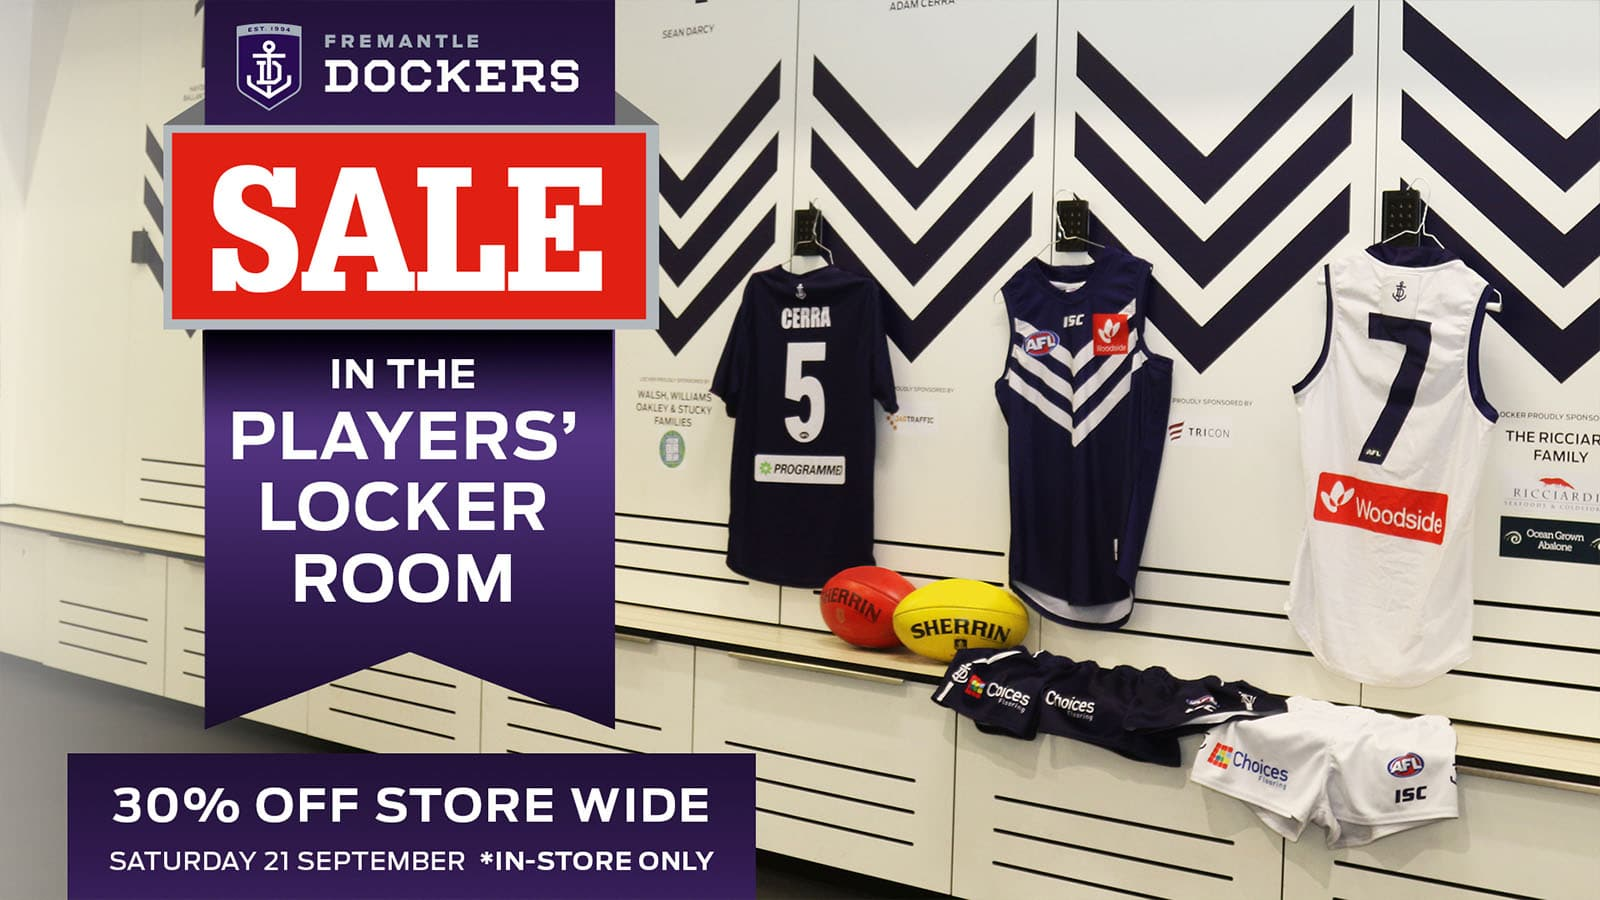 Members are invited into the club for the locker room sale on Saturday 21 September - Fremantle,Fremantle Dockers